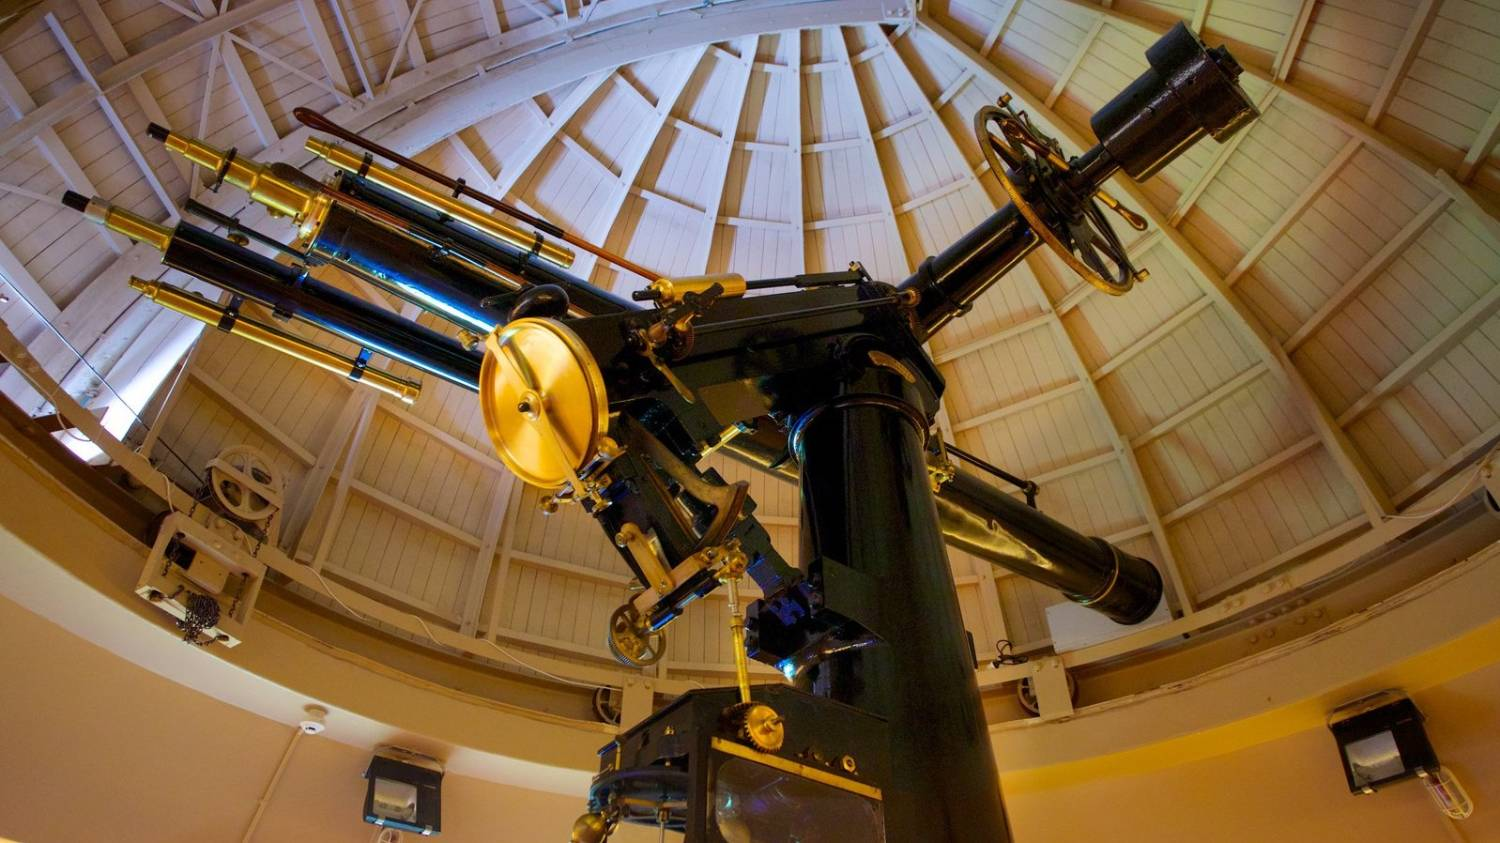 Carter Observatory - Things To Do In Wellington